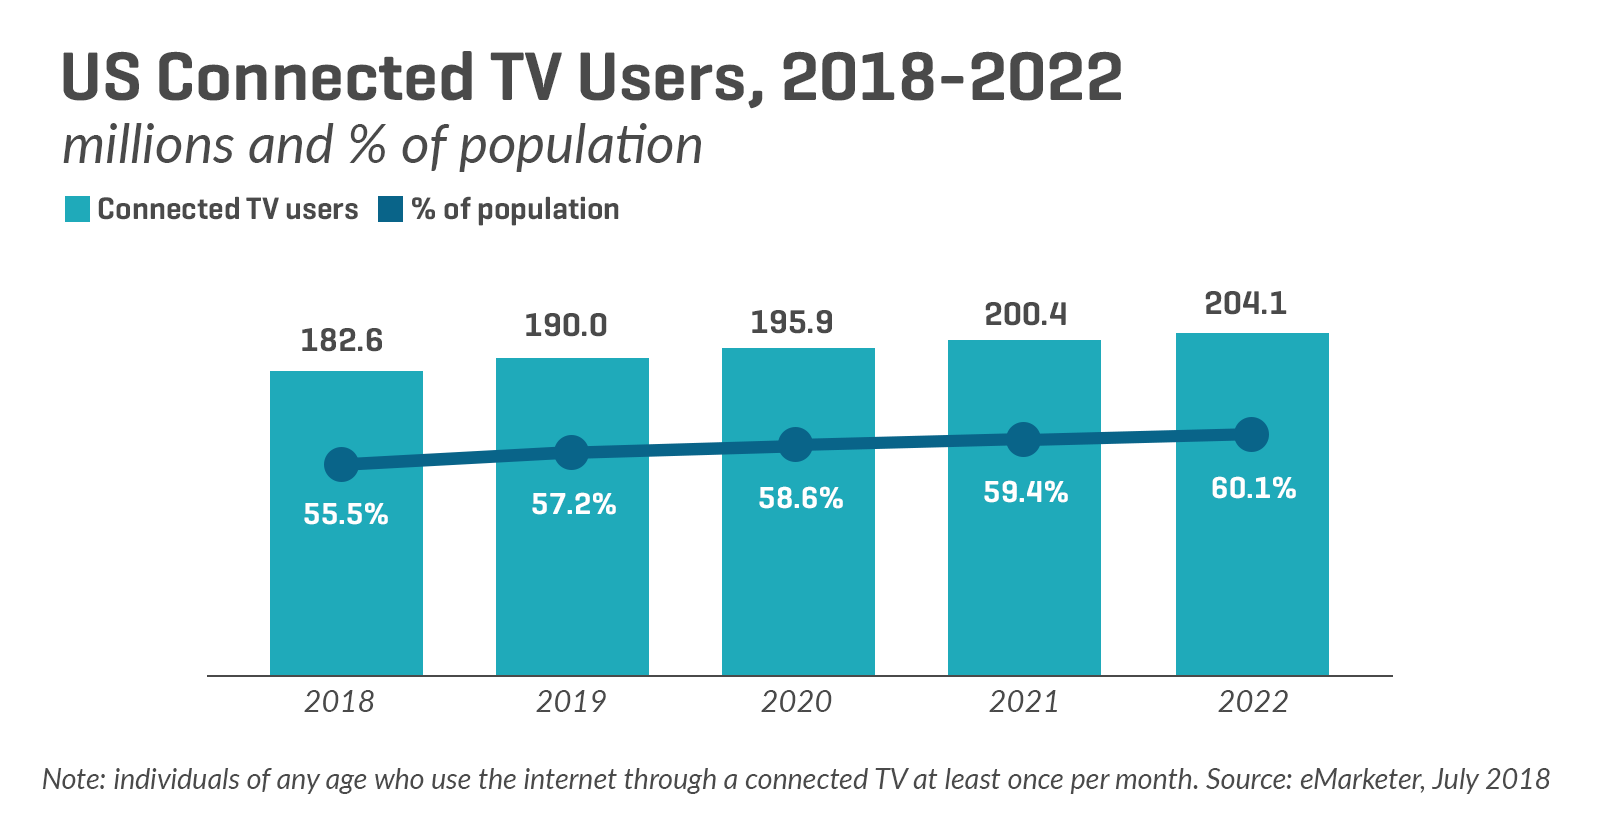 Search, Social & Connected TV: Why Connected TV Is the Next Big Ad Opportunity